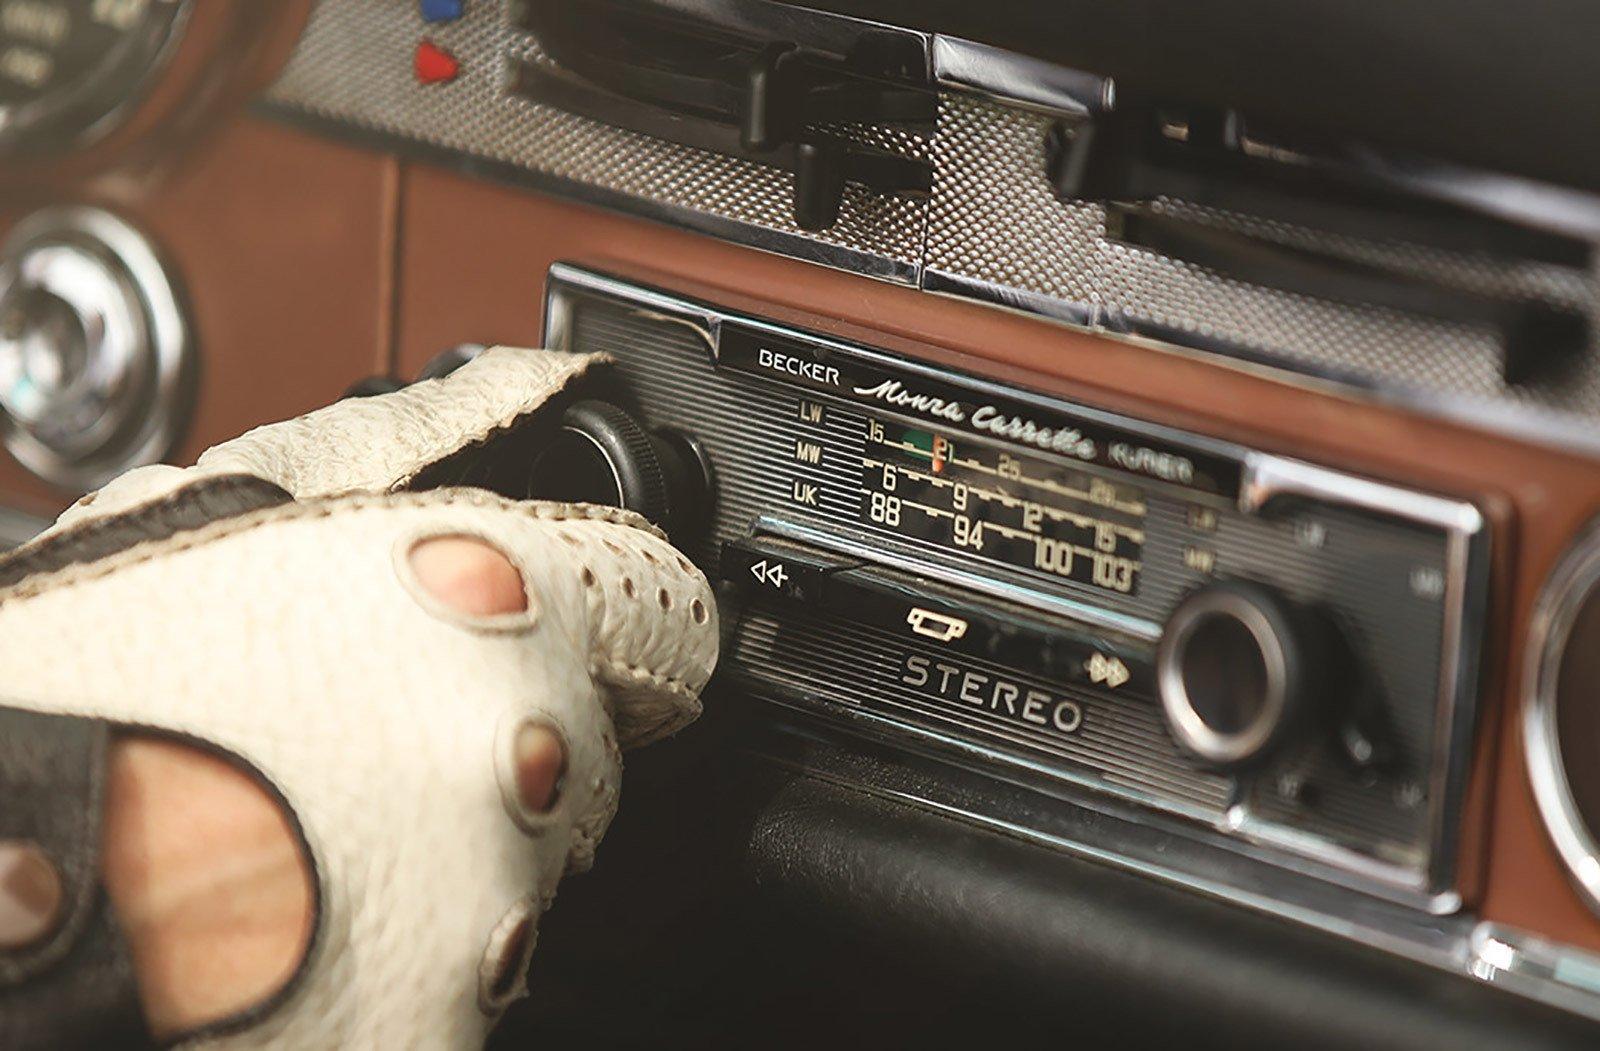 Photo 4 of 6 in Mercedes-Benz Classic Car Travel